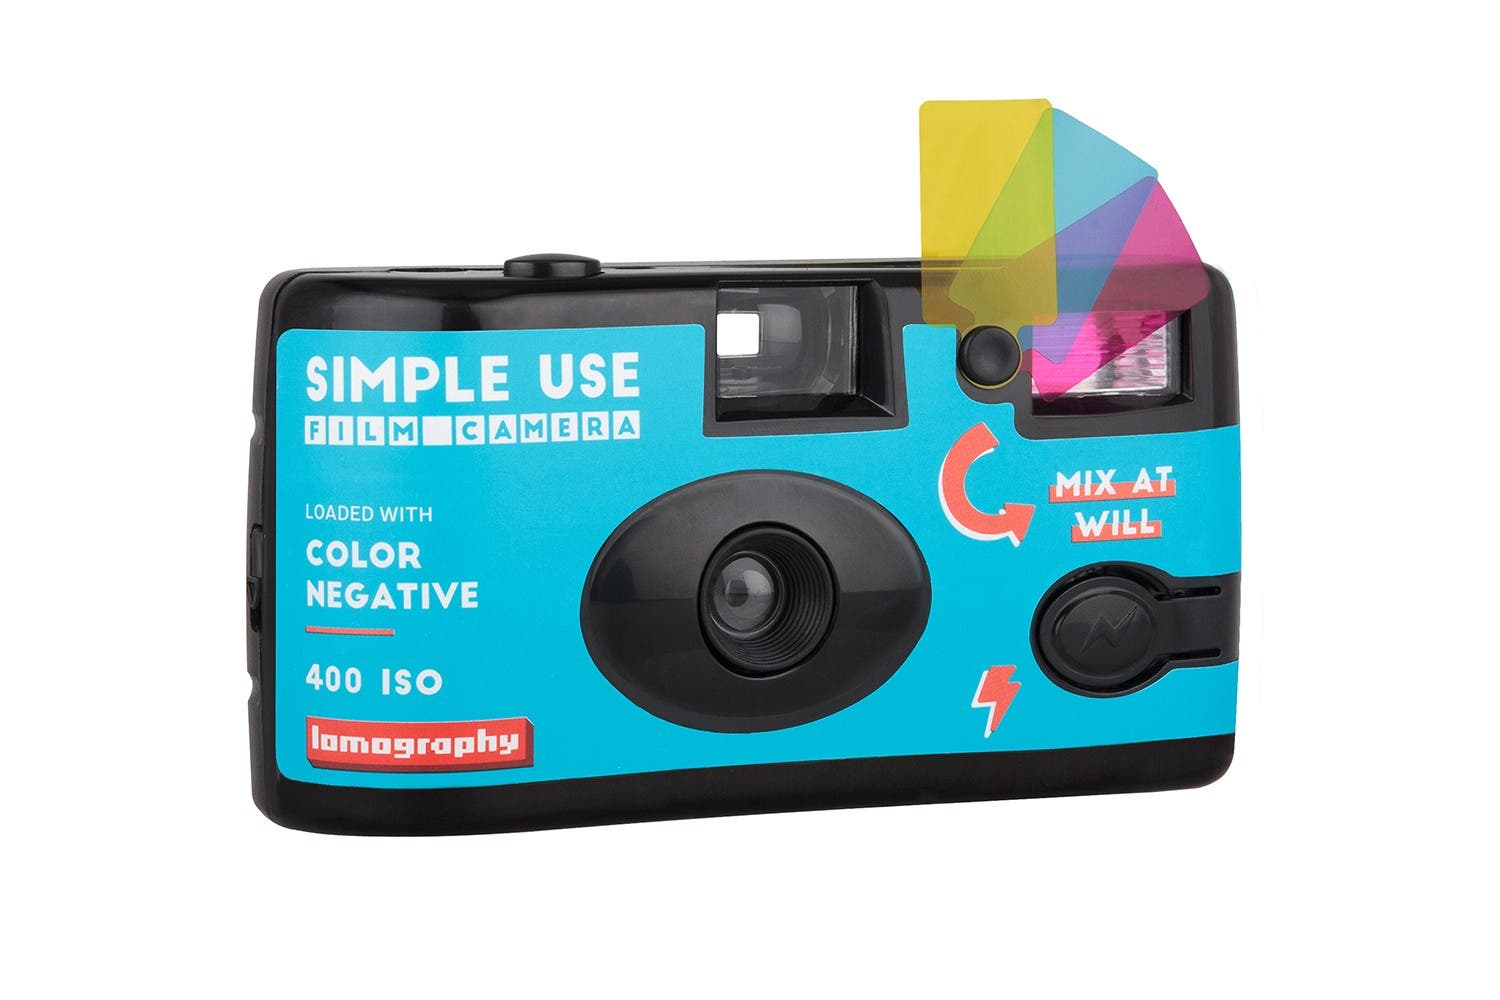 Lomography's New Disposable Cameras Are Pretty Adorable